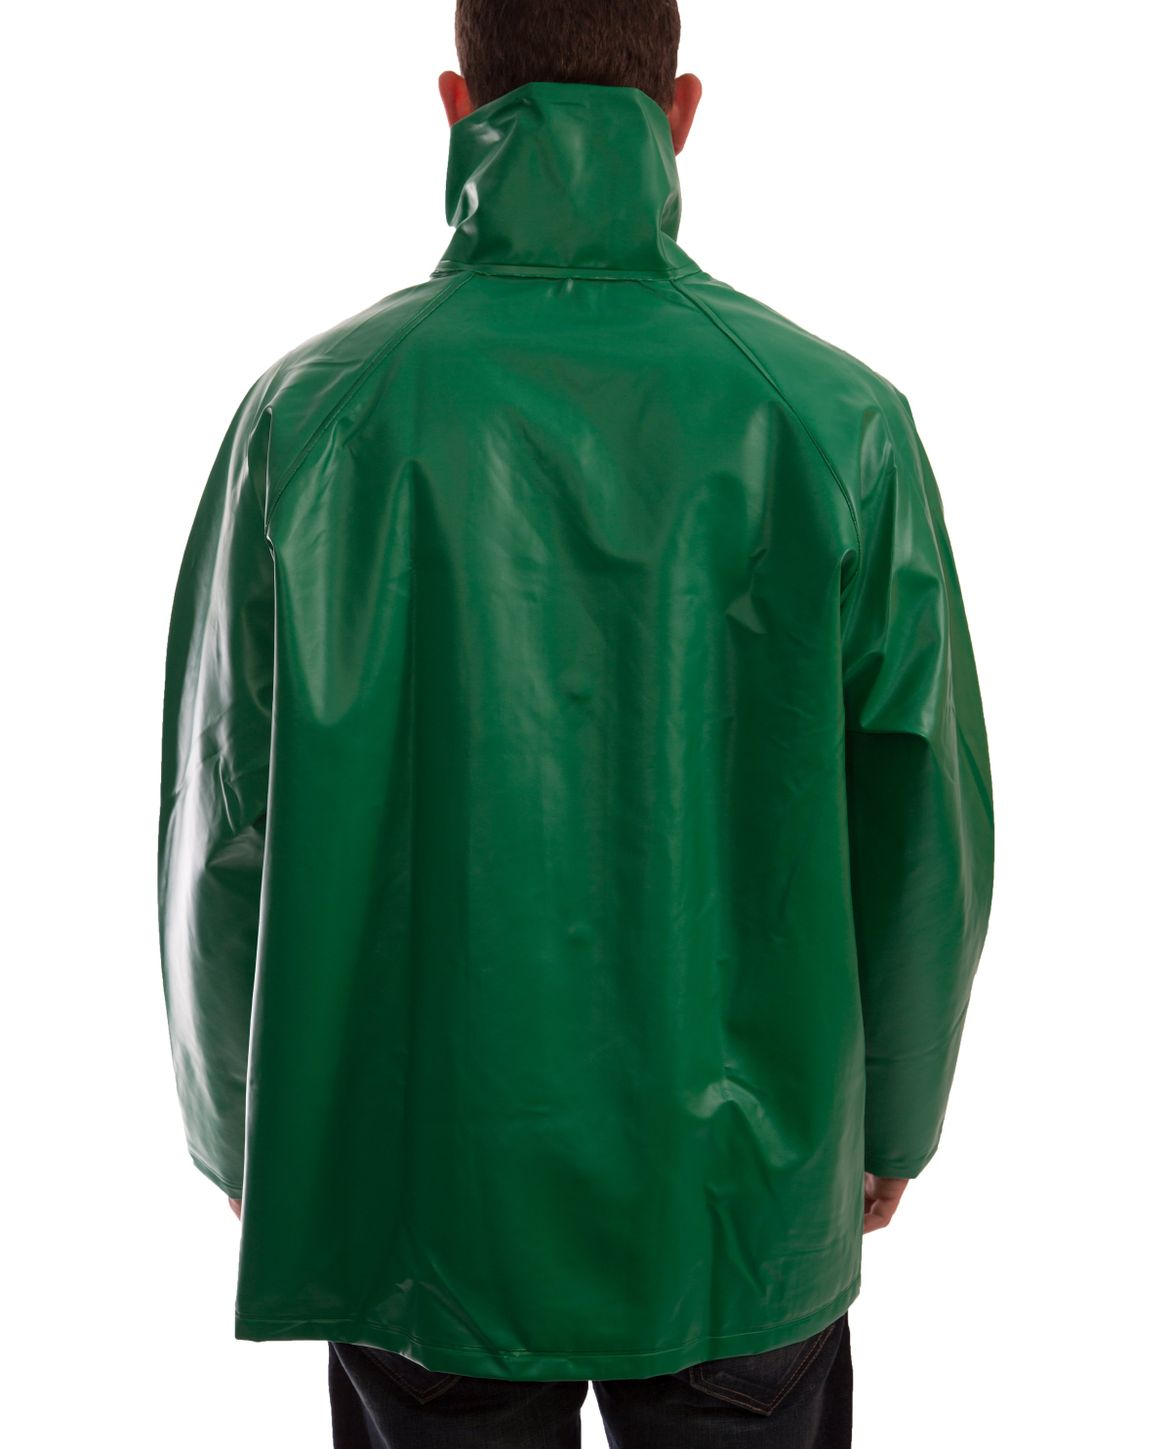 tingley-j41008-safetyflex-fire-resistant-jacket-pvc-coated-chemical-resistant-with-high-collar-back.jpg